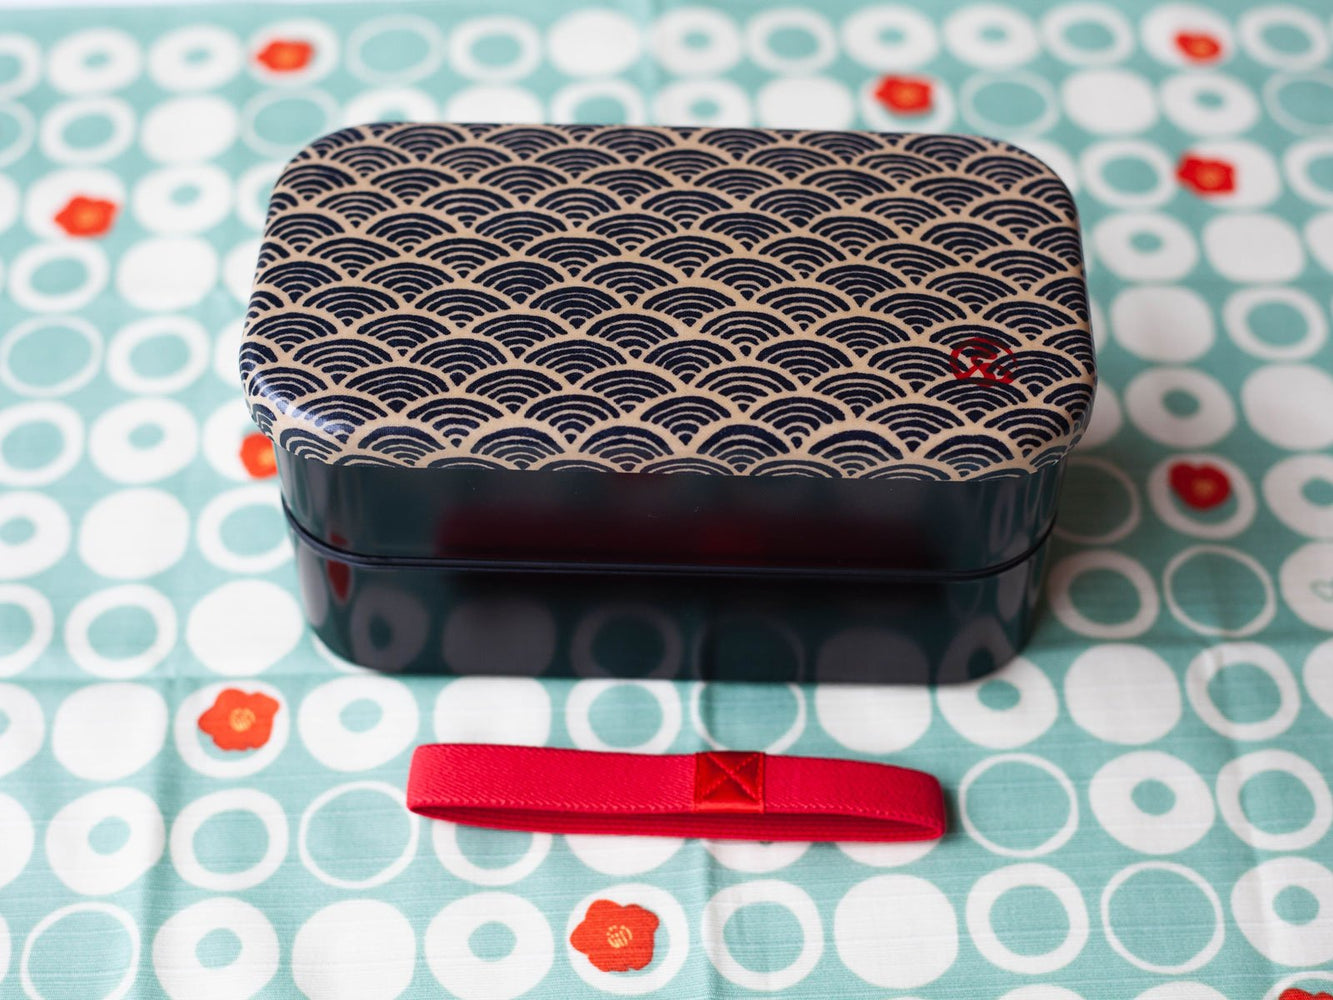 Boîte à bento Wafu Rectangle | Ocean Wave L par  Hakoya - Bento&co - La boutique spécialiste du Bento, en direct de Kyoto